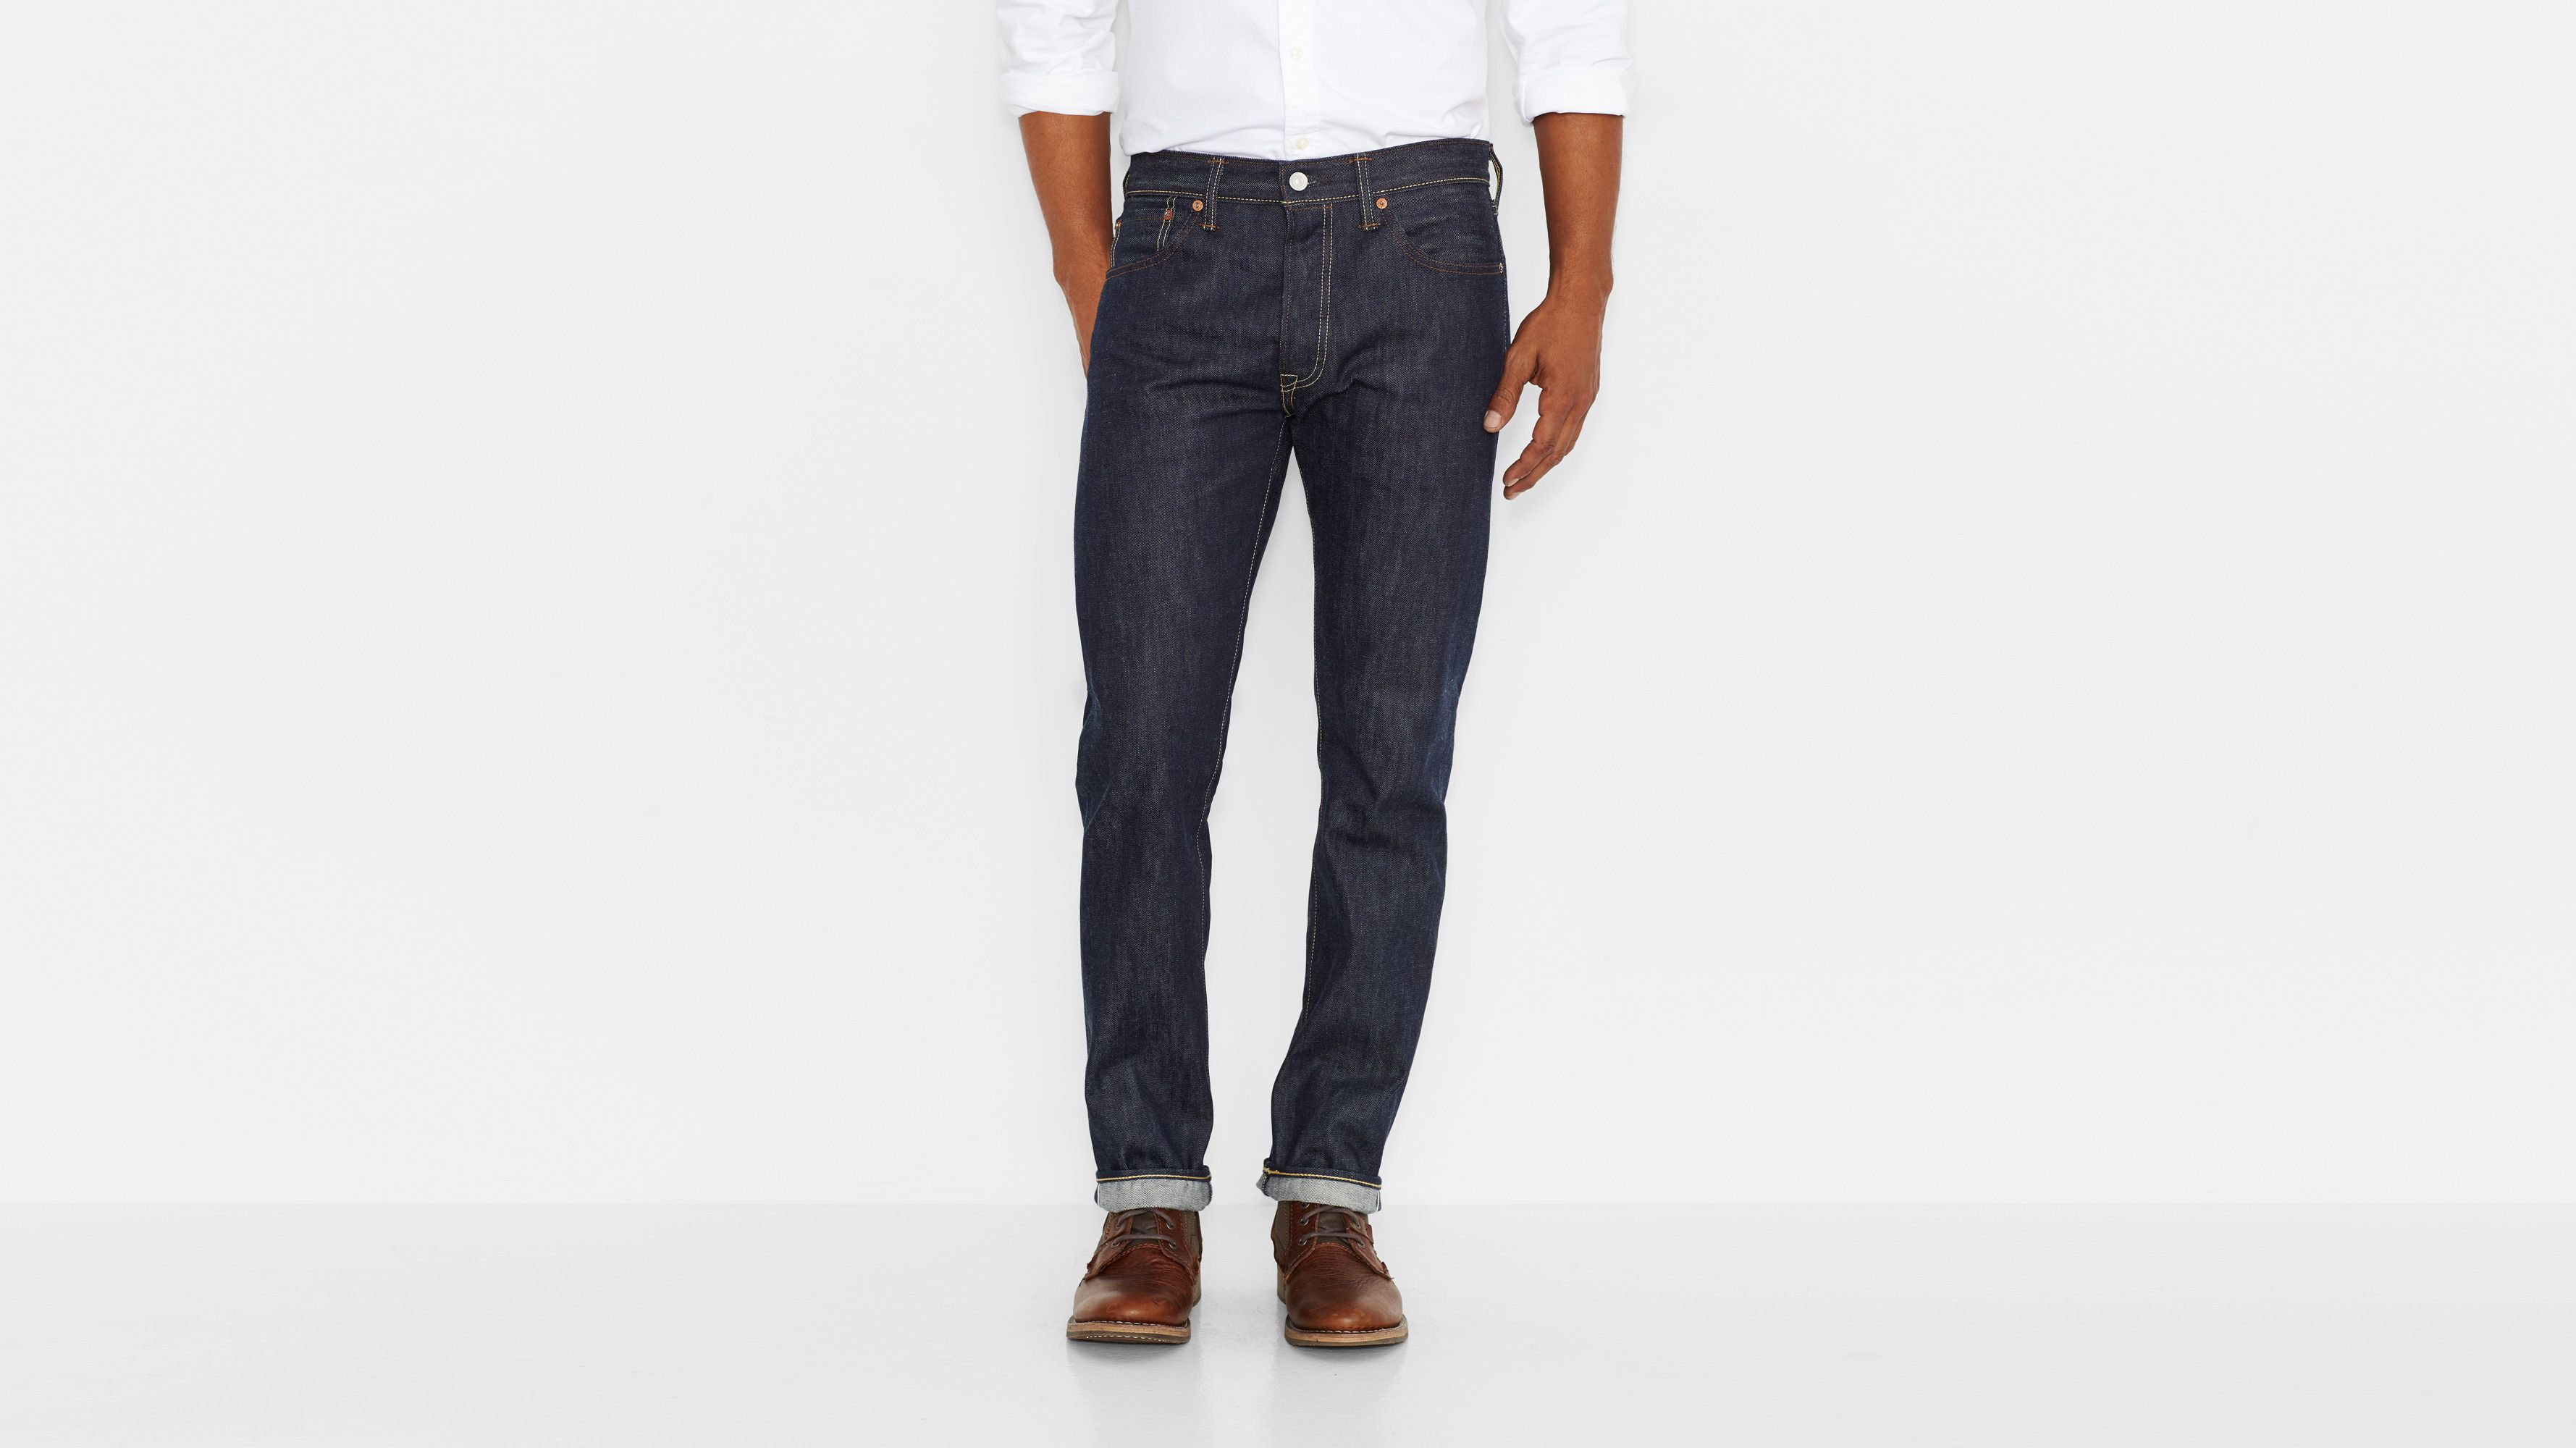 501® Original Shrink-to-Fit™ Selvedge Jeans - Long Day